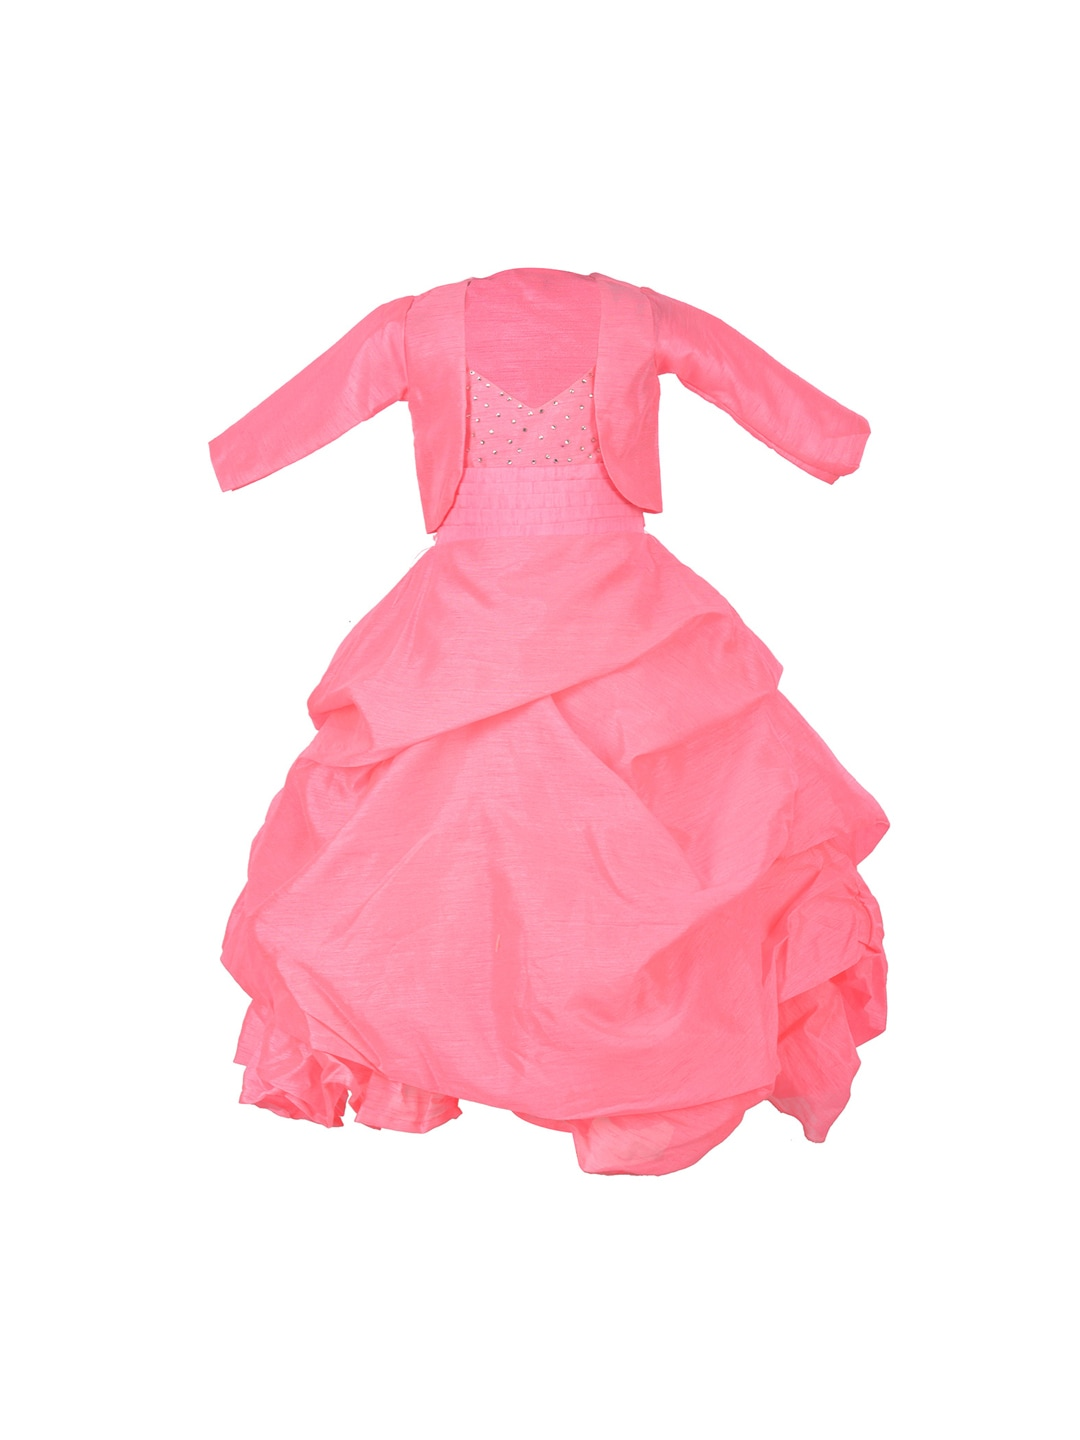 cac69e458 Girls Clothes - Buy Girls Clothing Online in India